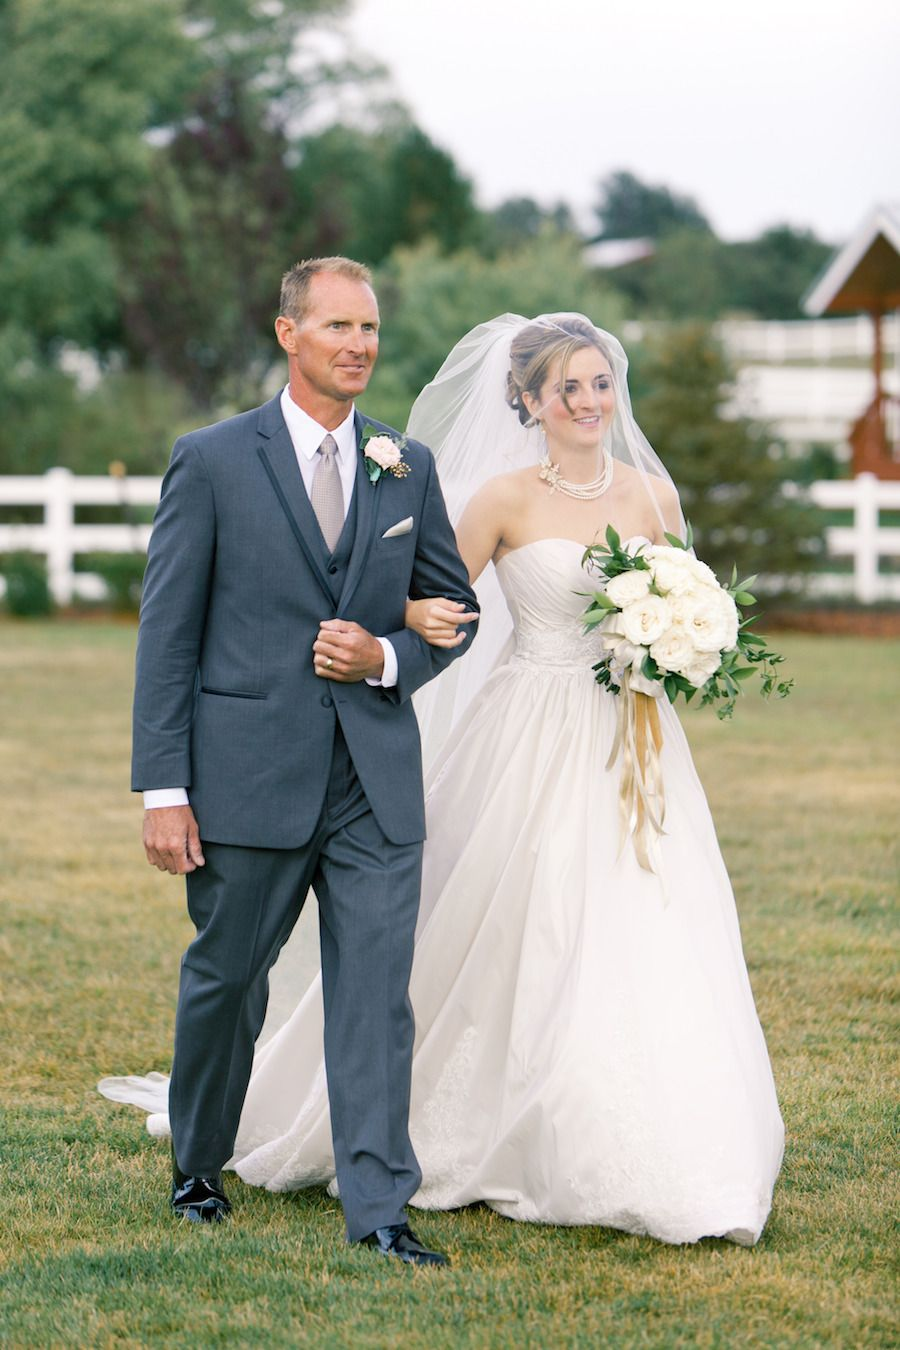 Bridal Fathers suits father of the bride - charcoal gray suit, white shirt (point collar), OZDDBRJ